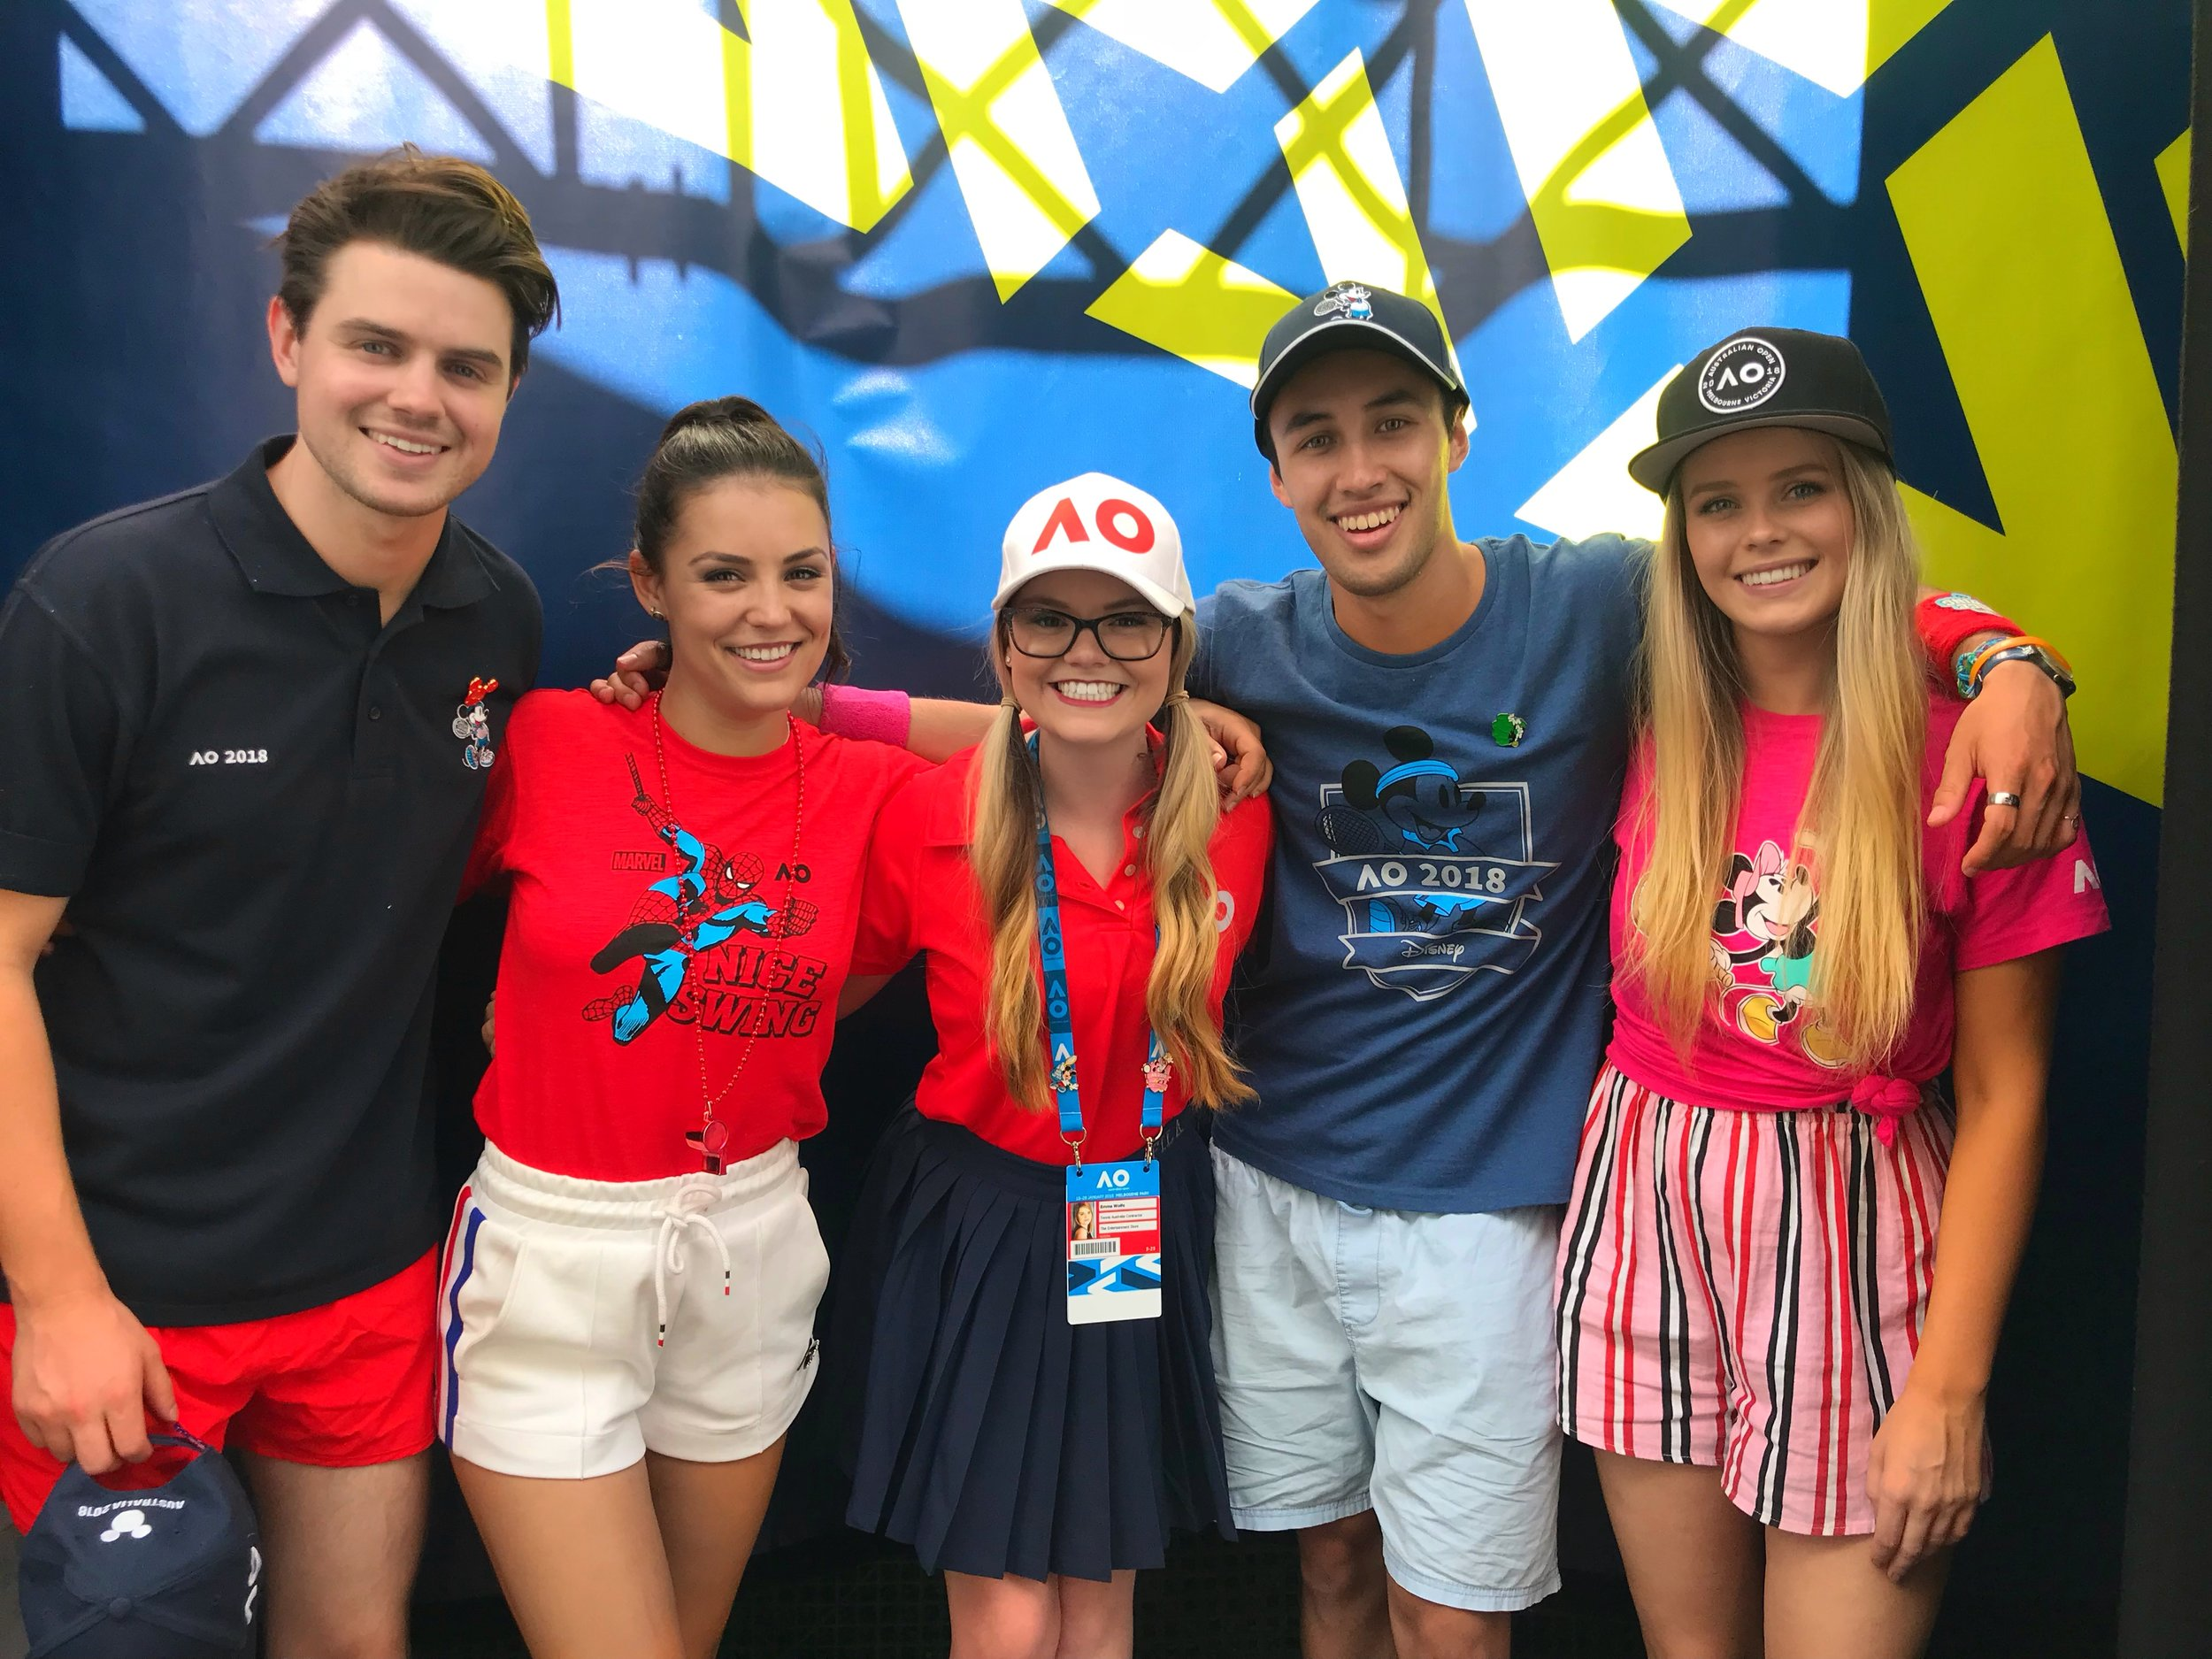 Australian open fun with the team from Disney's Hangin' with.